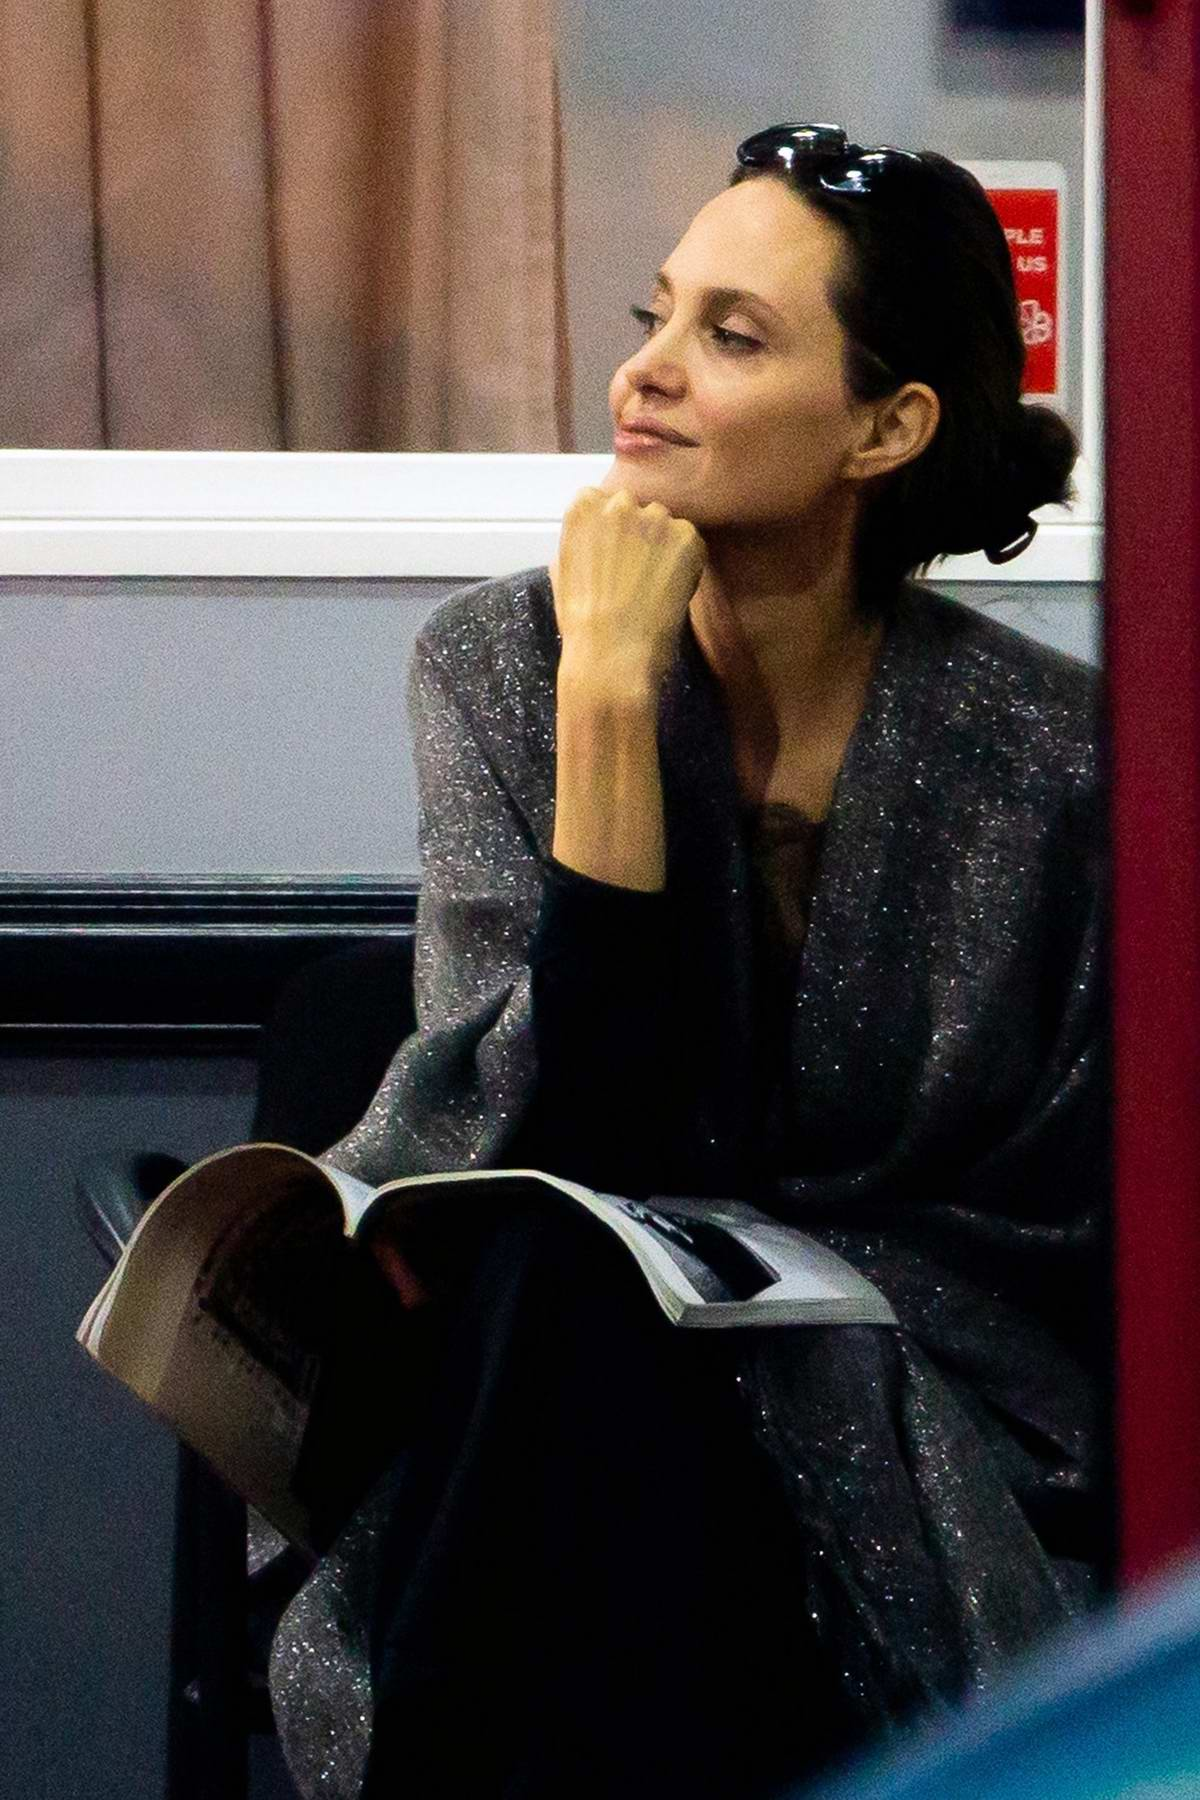 Angelina Jolie happily watches her kids karate class while waiting with other parents in Los Angeles